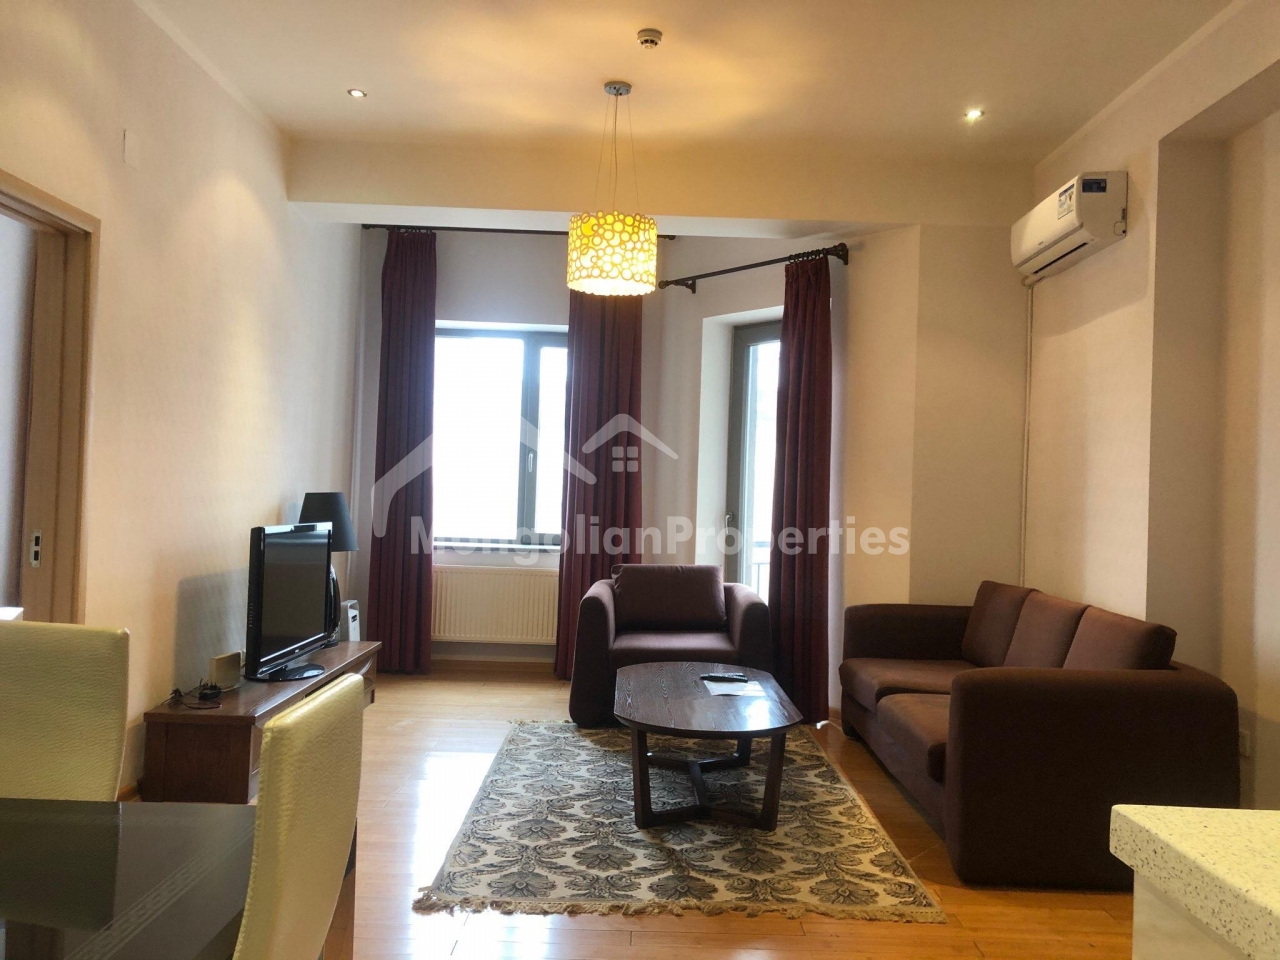 FOR RENT : REGENCY RESIDENCE 2 BEDROOM WITH AFFORDABLE PRICE